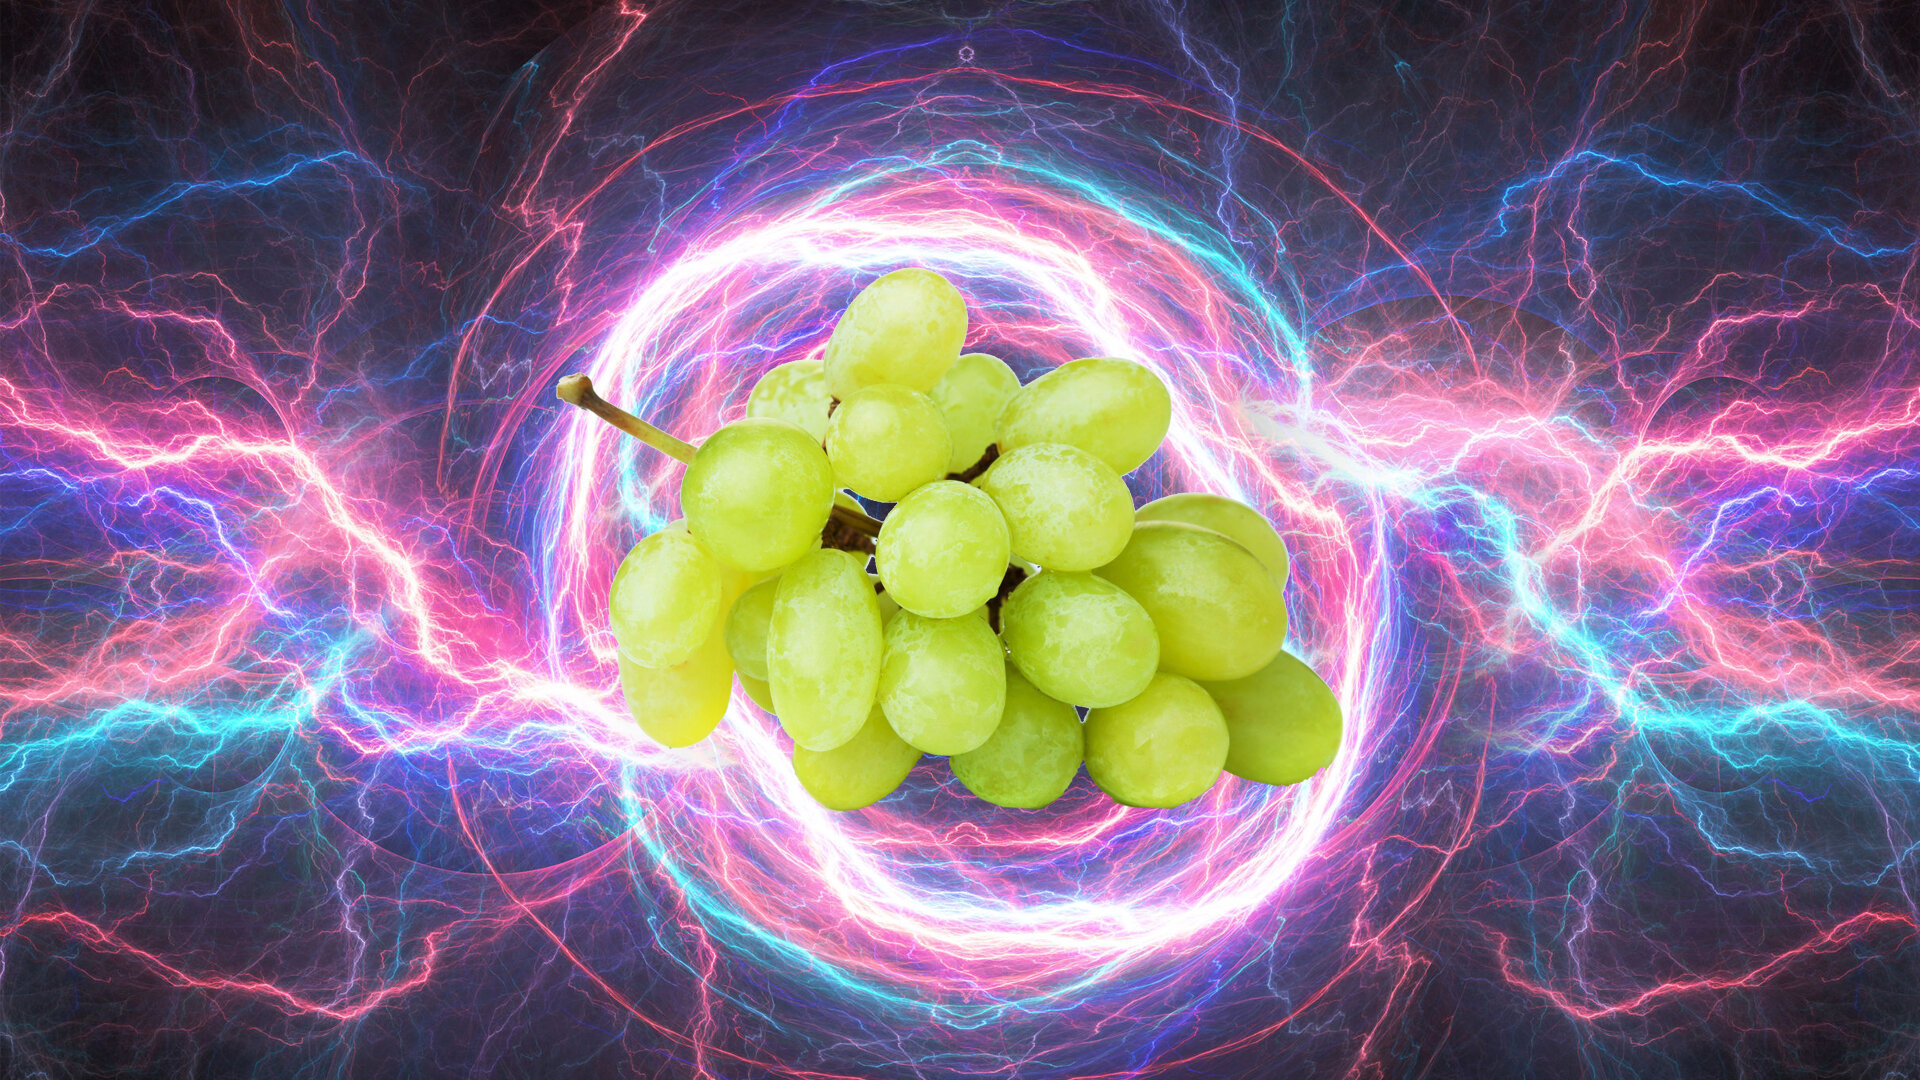 55: You can make plasma by microwaving grapes.  https://www.youtube.com/watch?v=wCrtk-pyP0I